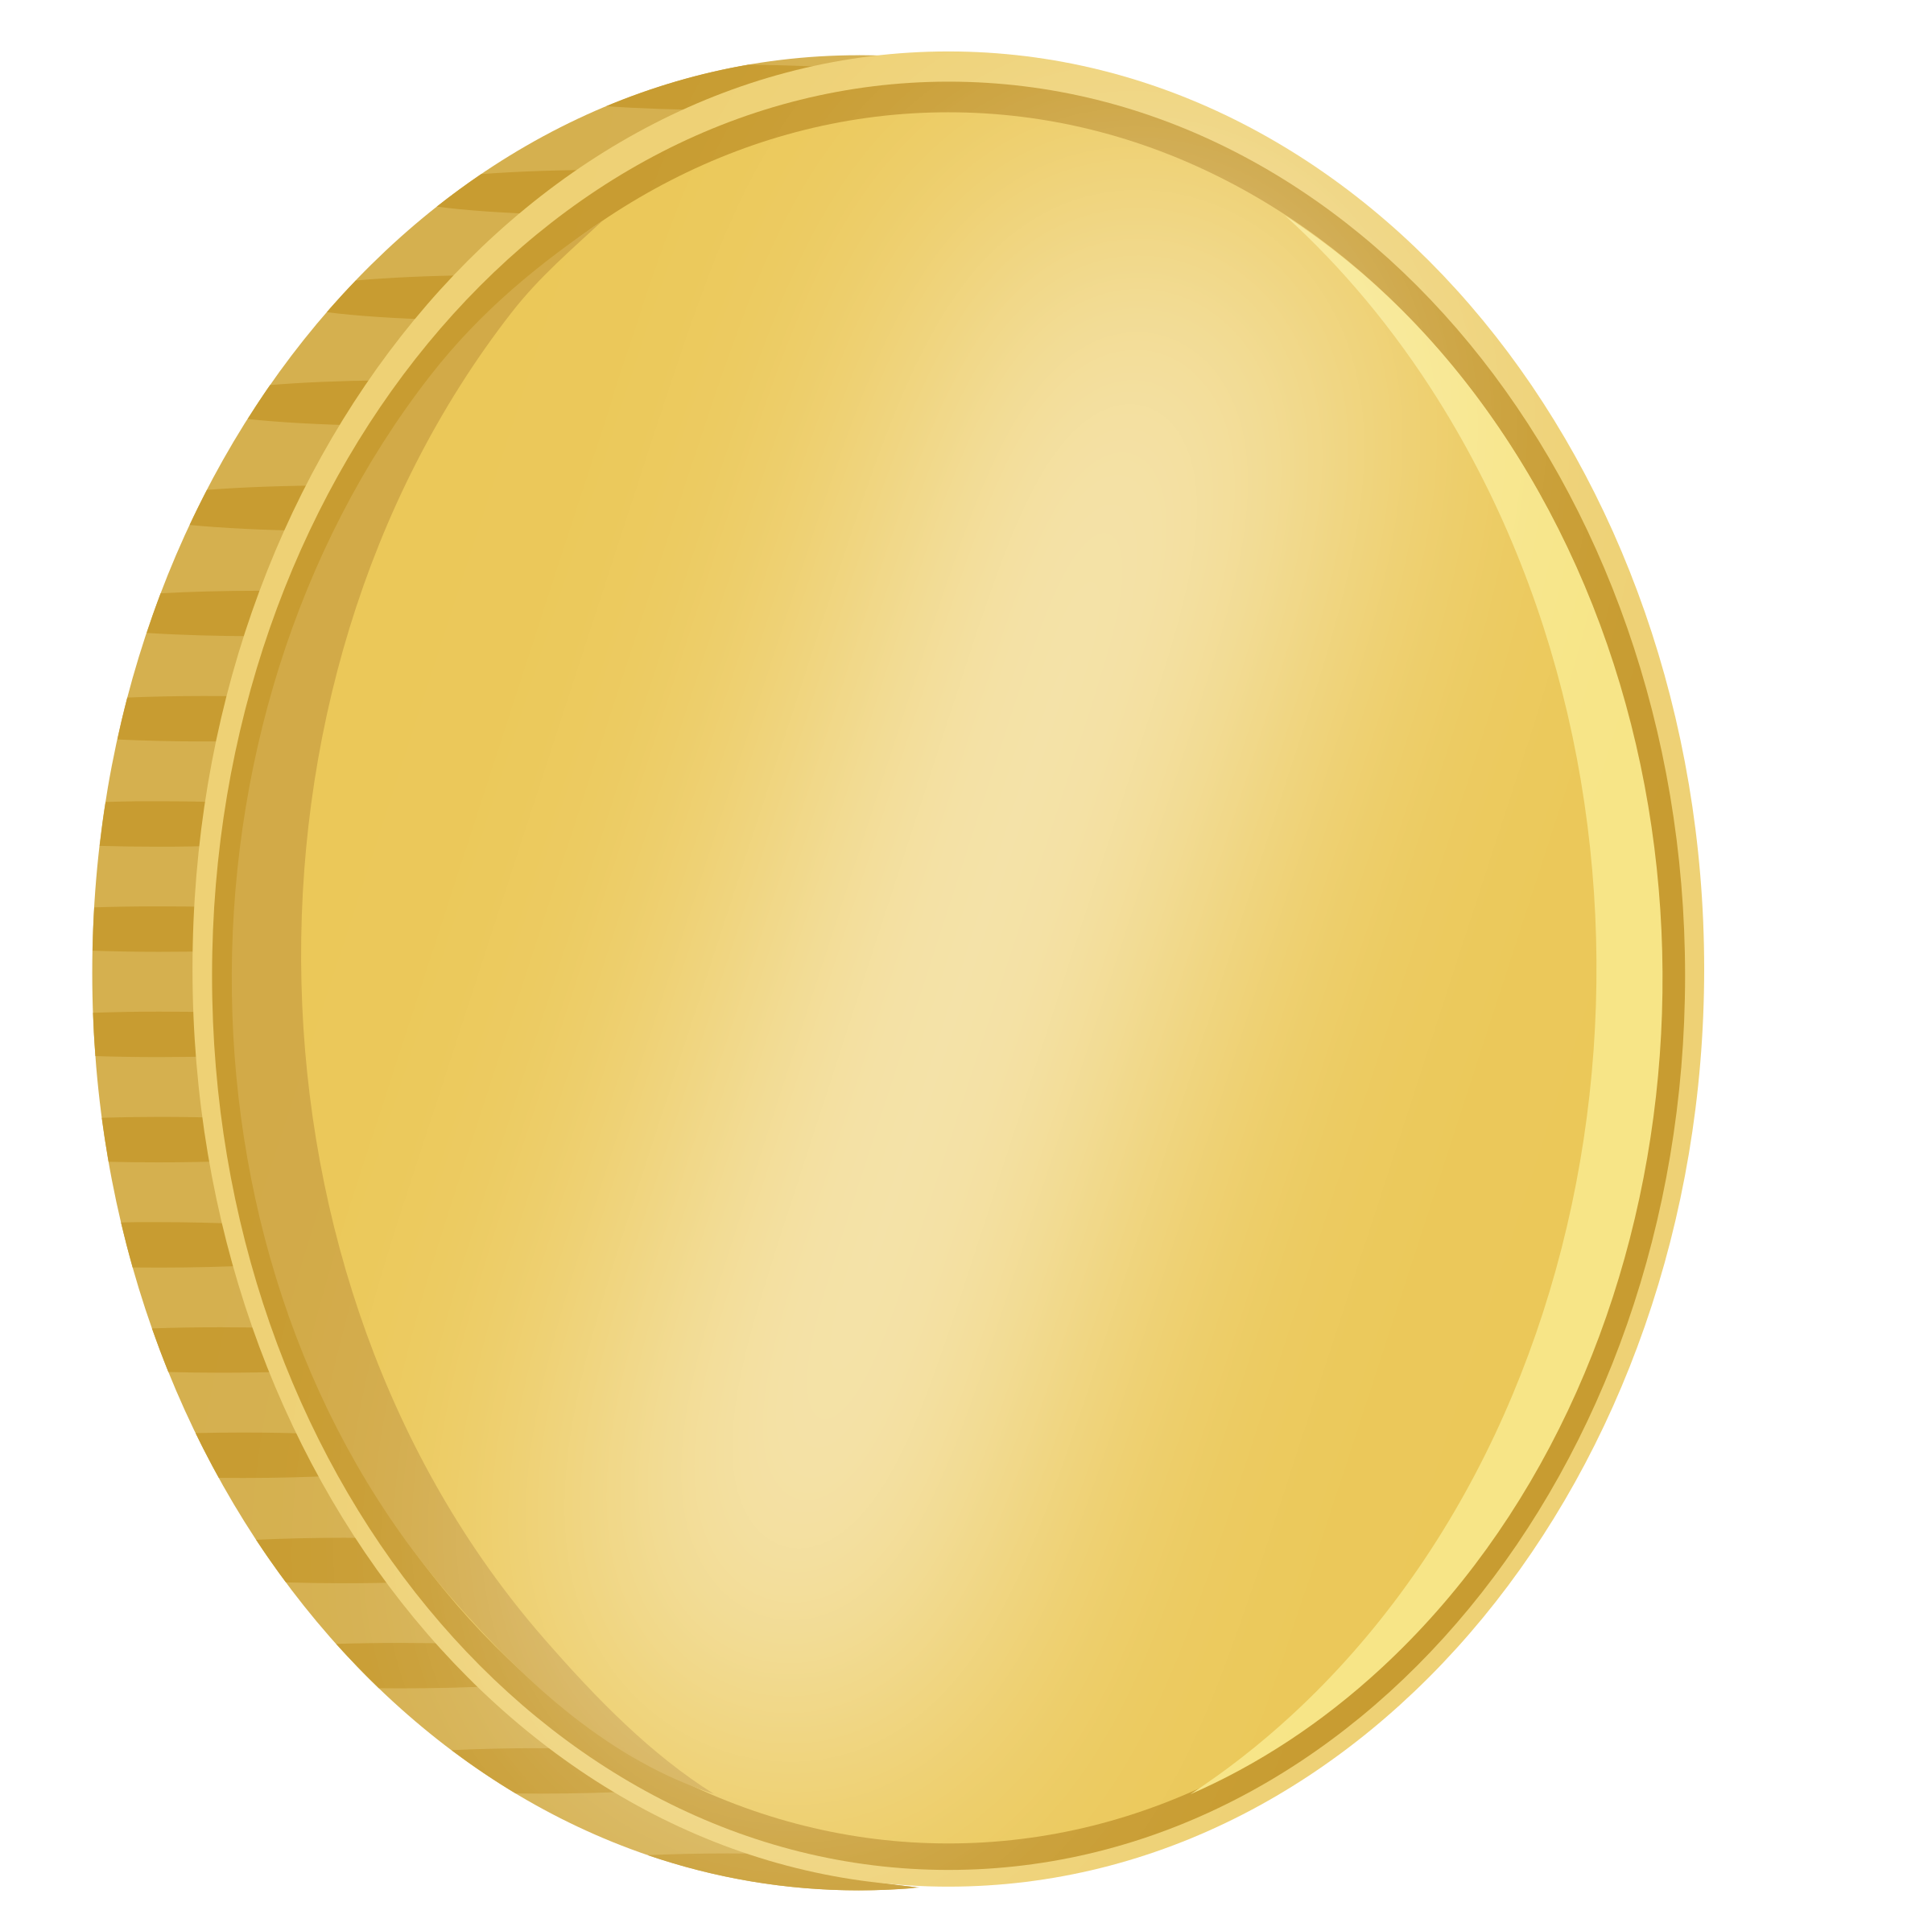 gold coin PNG image - Coin HD PNG - PNG HD Coins